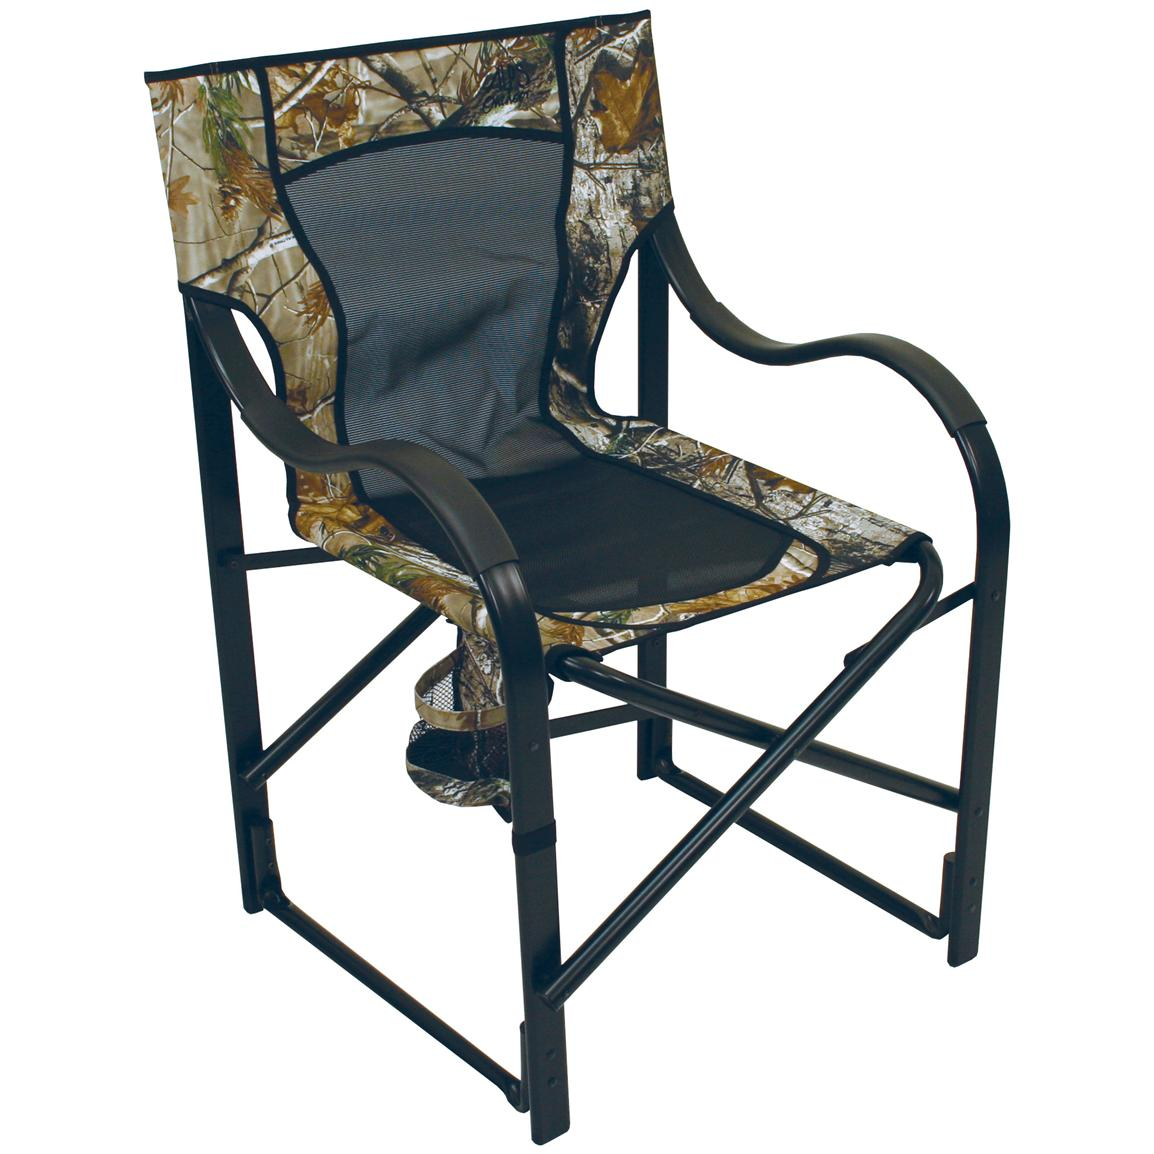 Campfire Chairs Alps Mountaineering Camo Camp Chair 177068 Chairs At